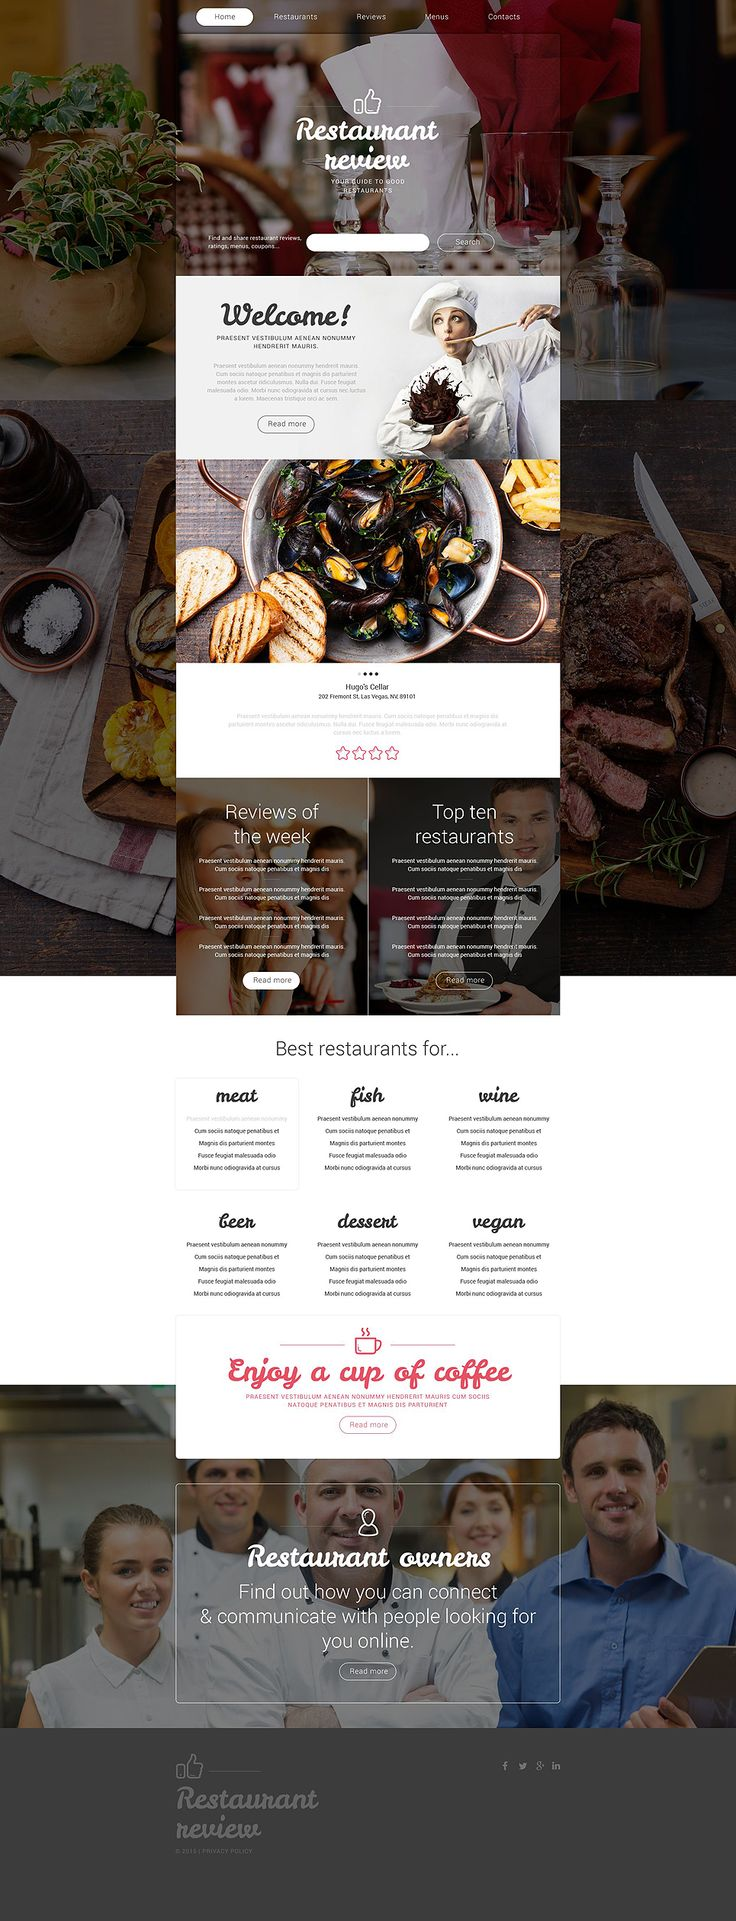 Restaurant Best Website Template 2015